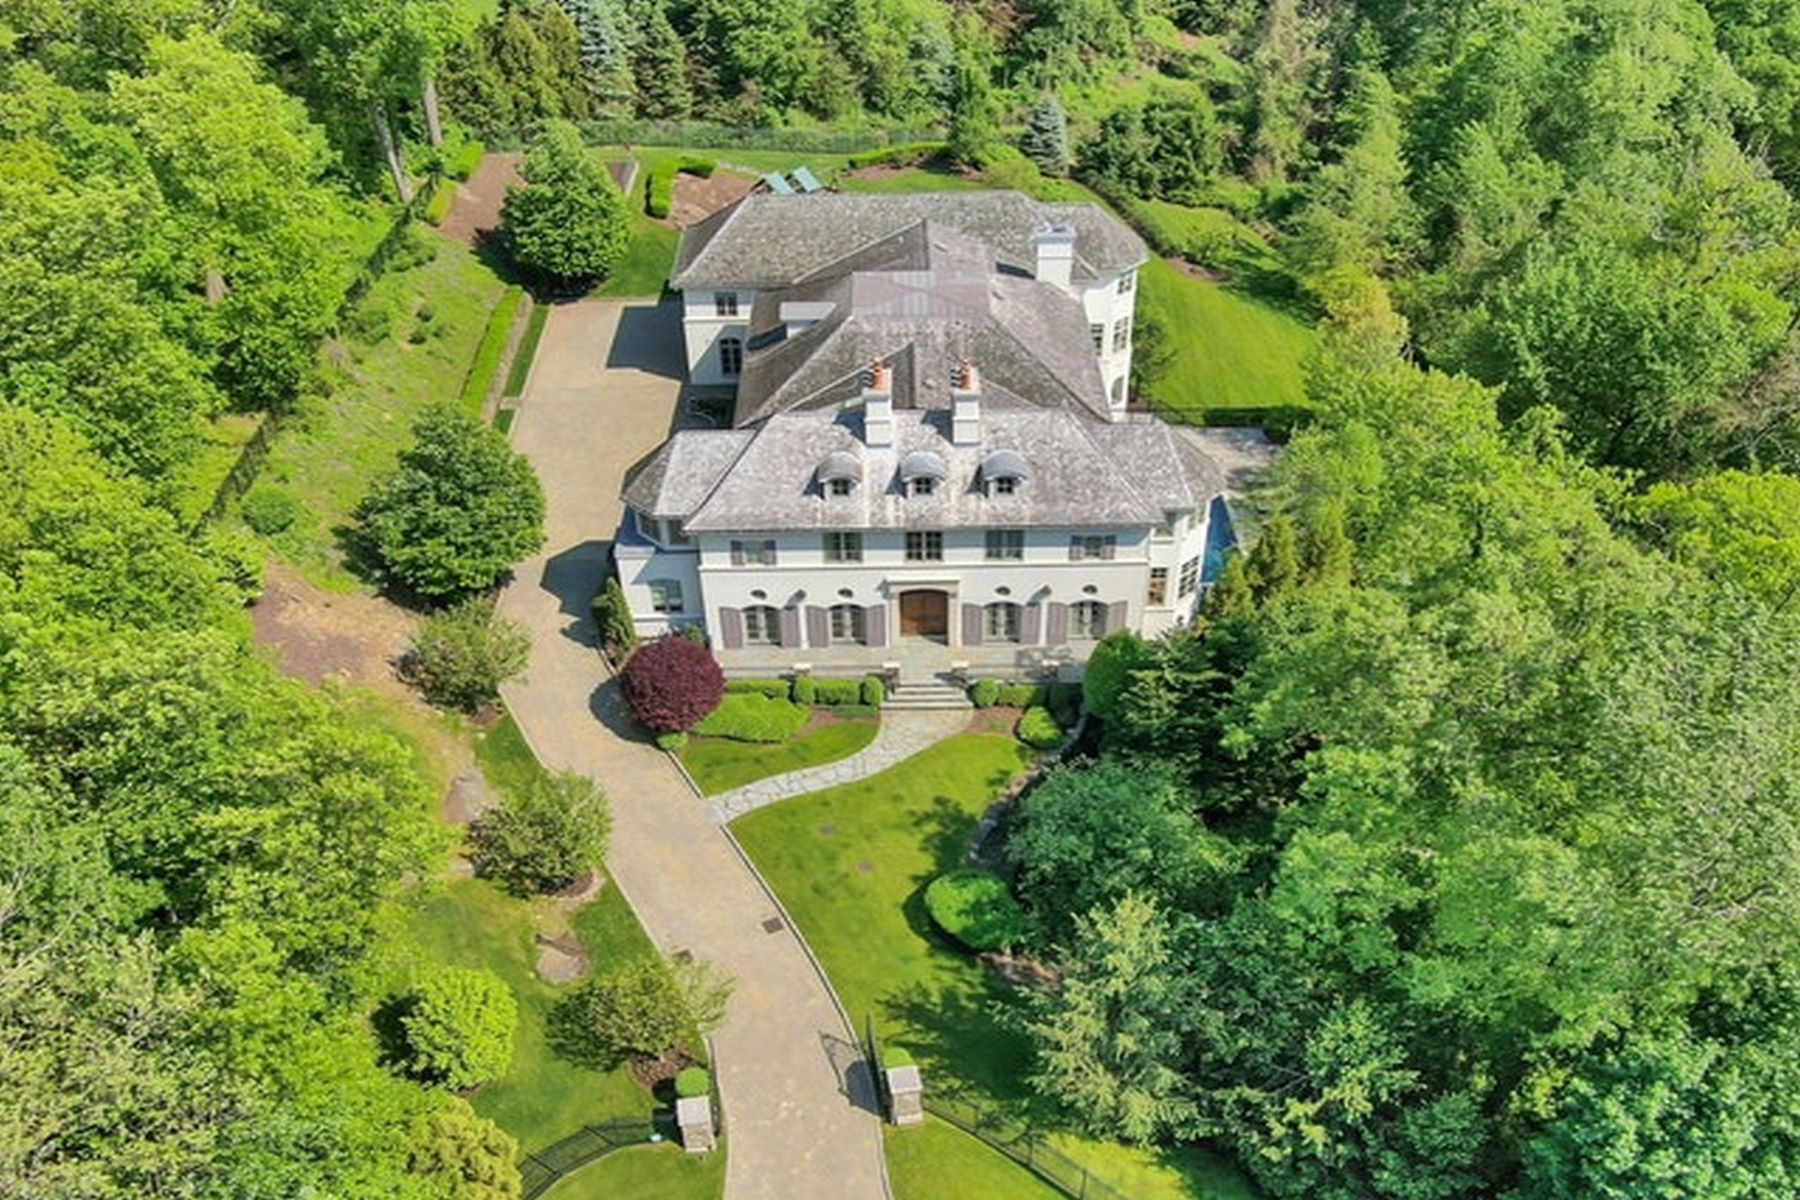 Single Family Home for Sale at Alpine Estate - Sunset & Southern Views 19 Autumn Terr, Alpine, New Jersey 07620 United States